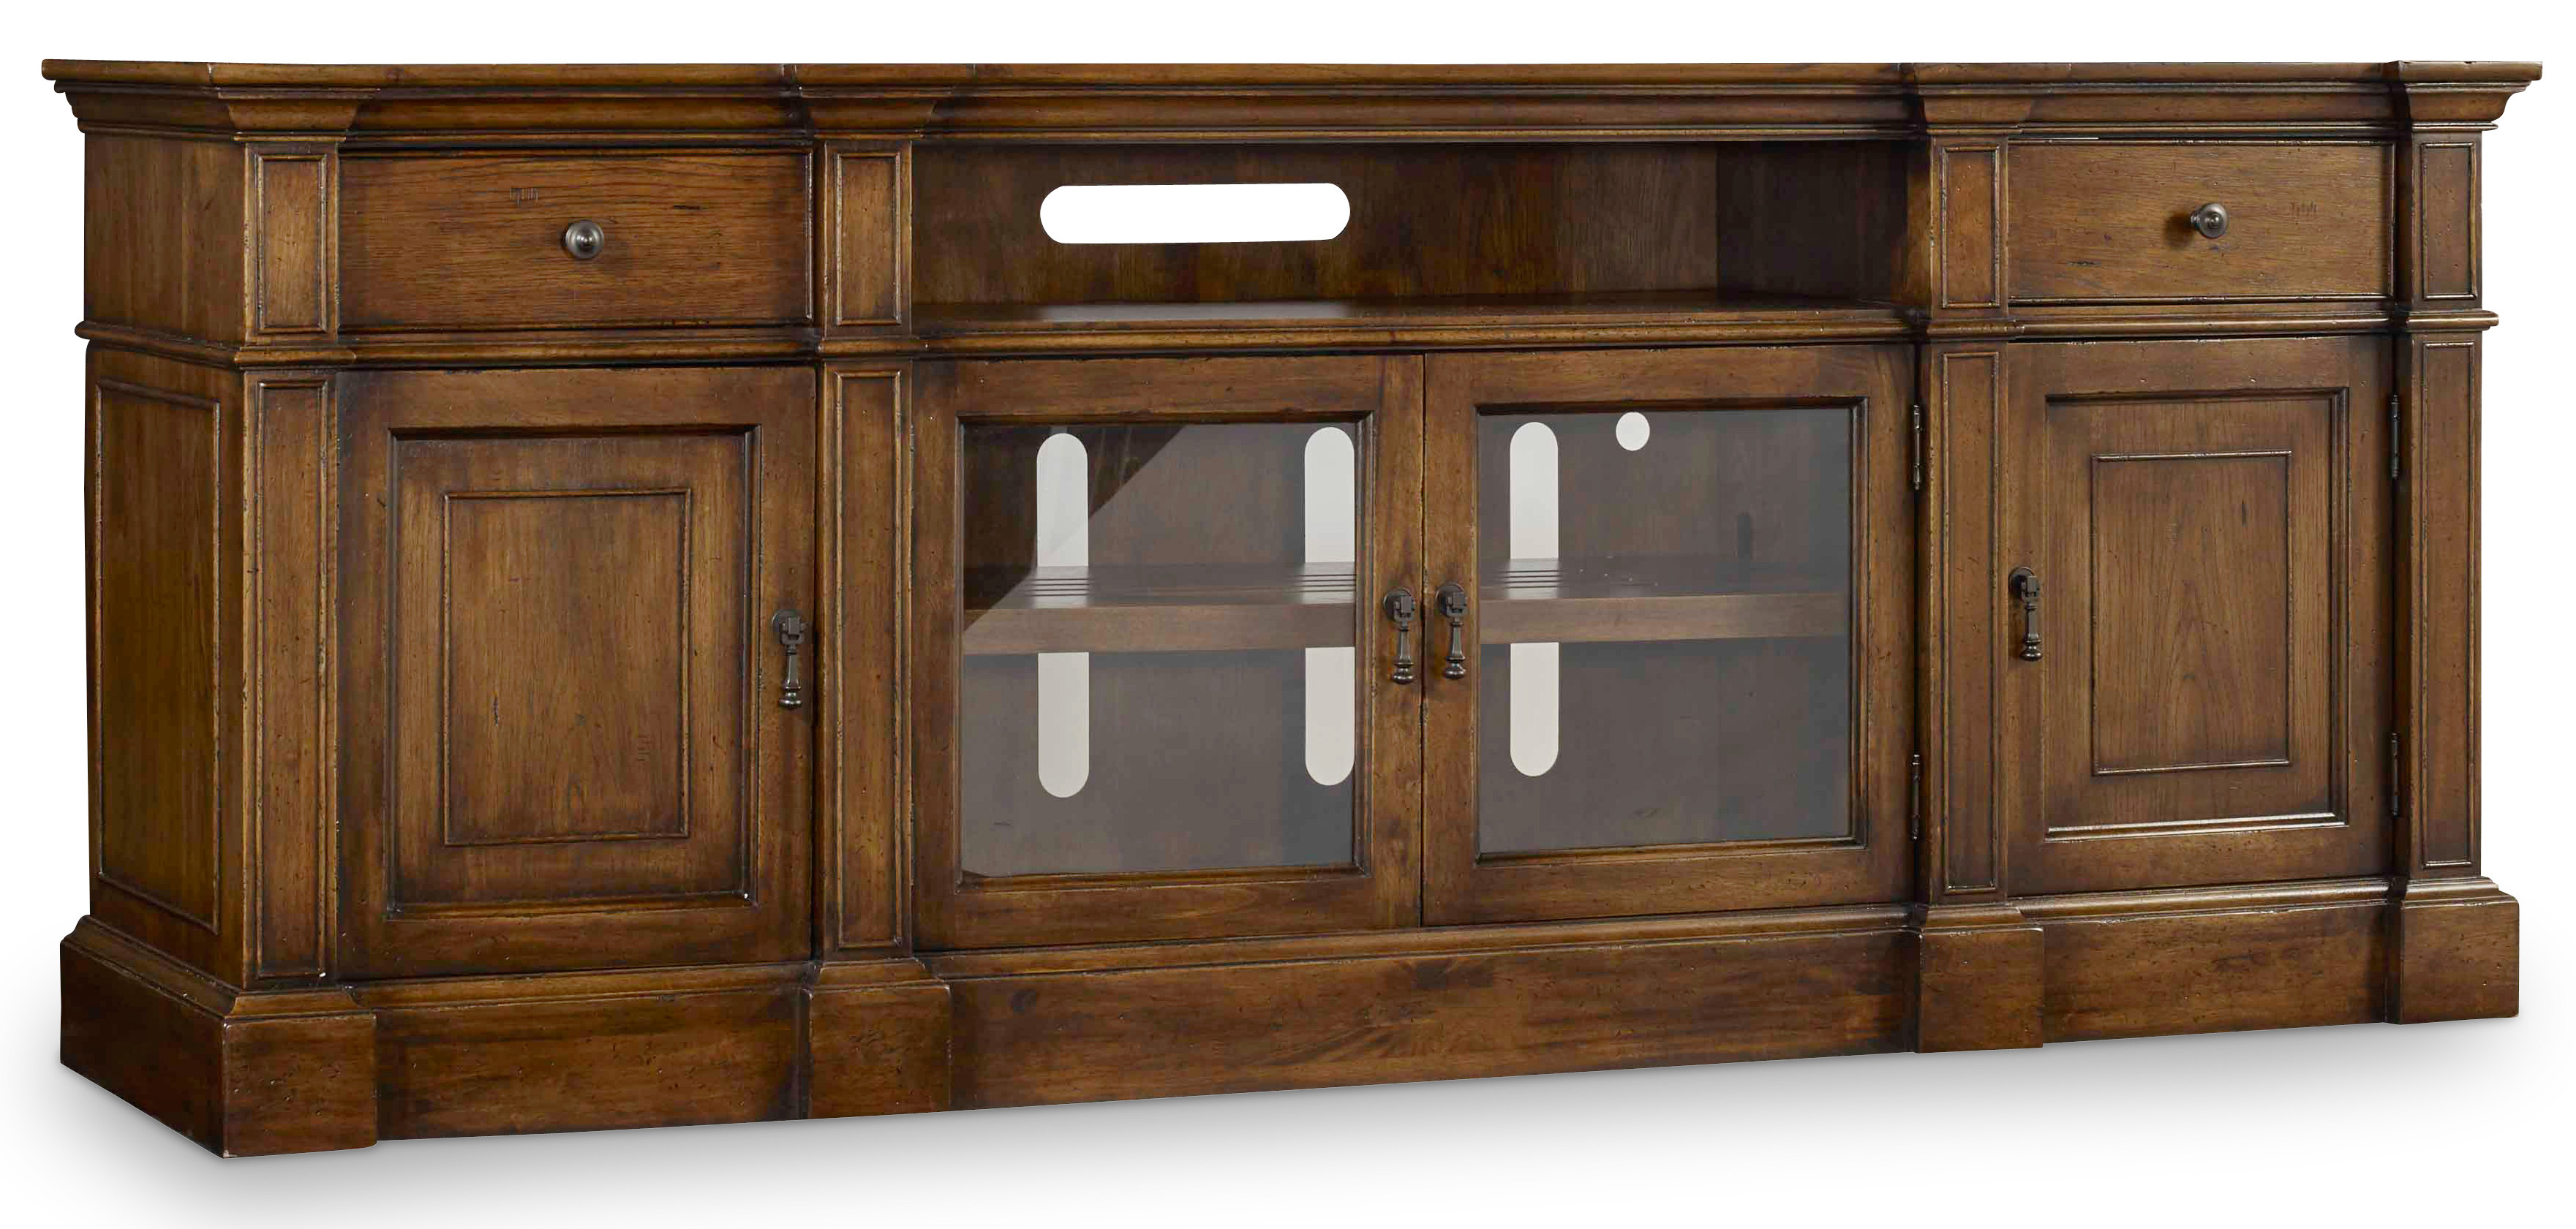 Hooker Furniture Archivist Entertainment Console - Item Number: 5447-55485